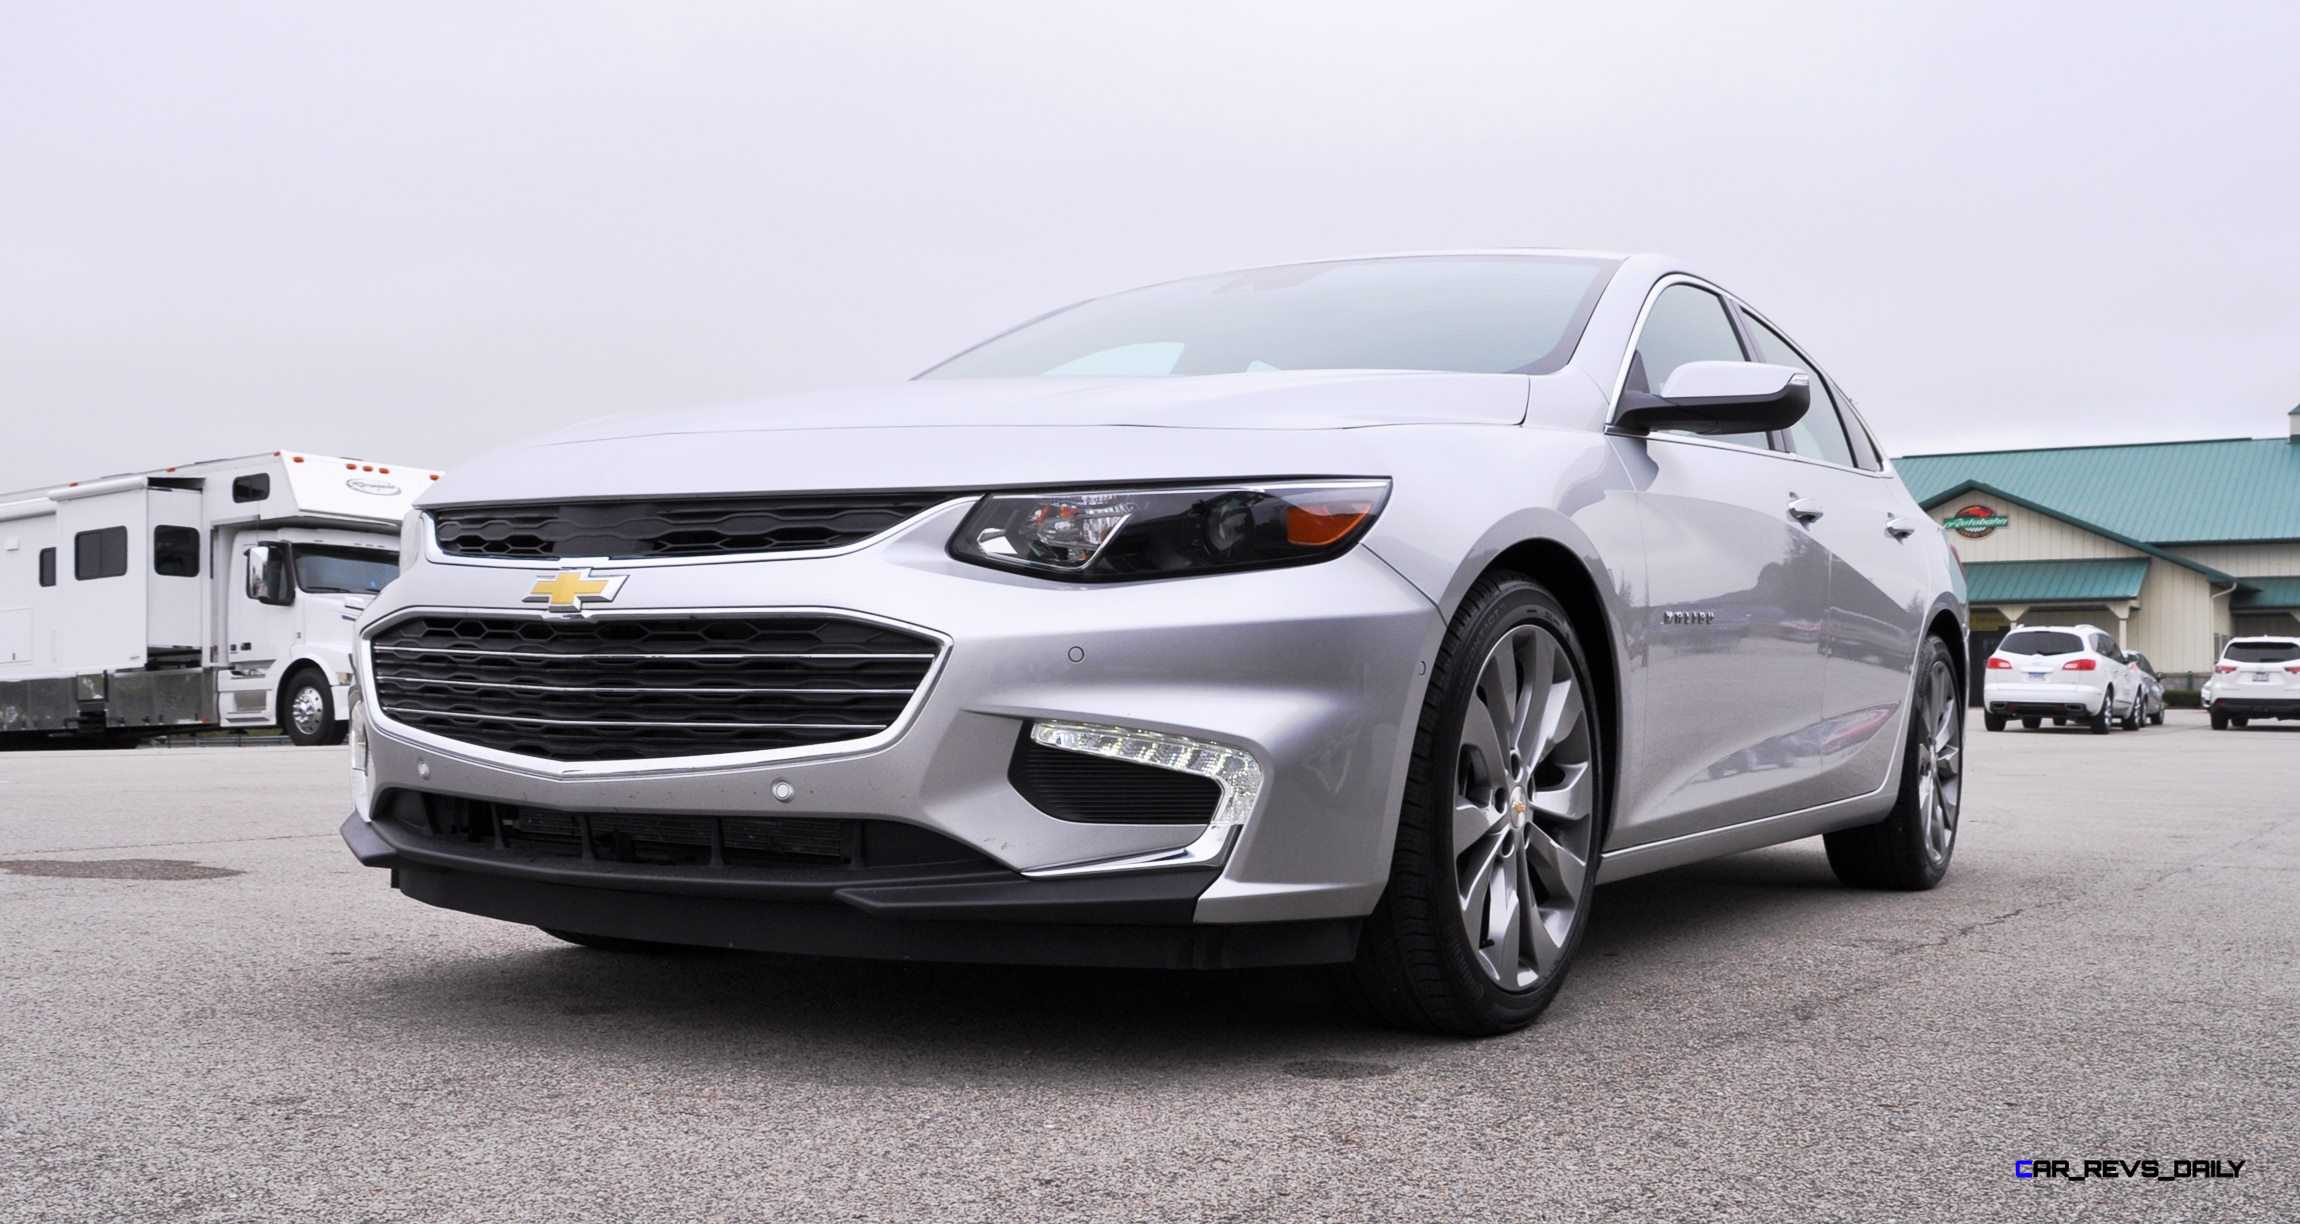 Elegant 2016 Chevrolet MALIBU 20T  Preproduction First Look Inside And